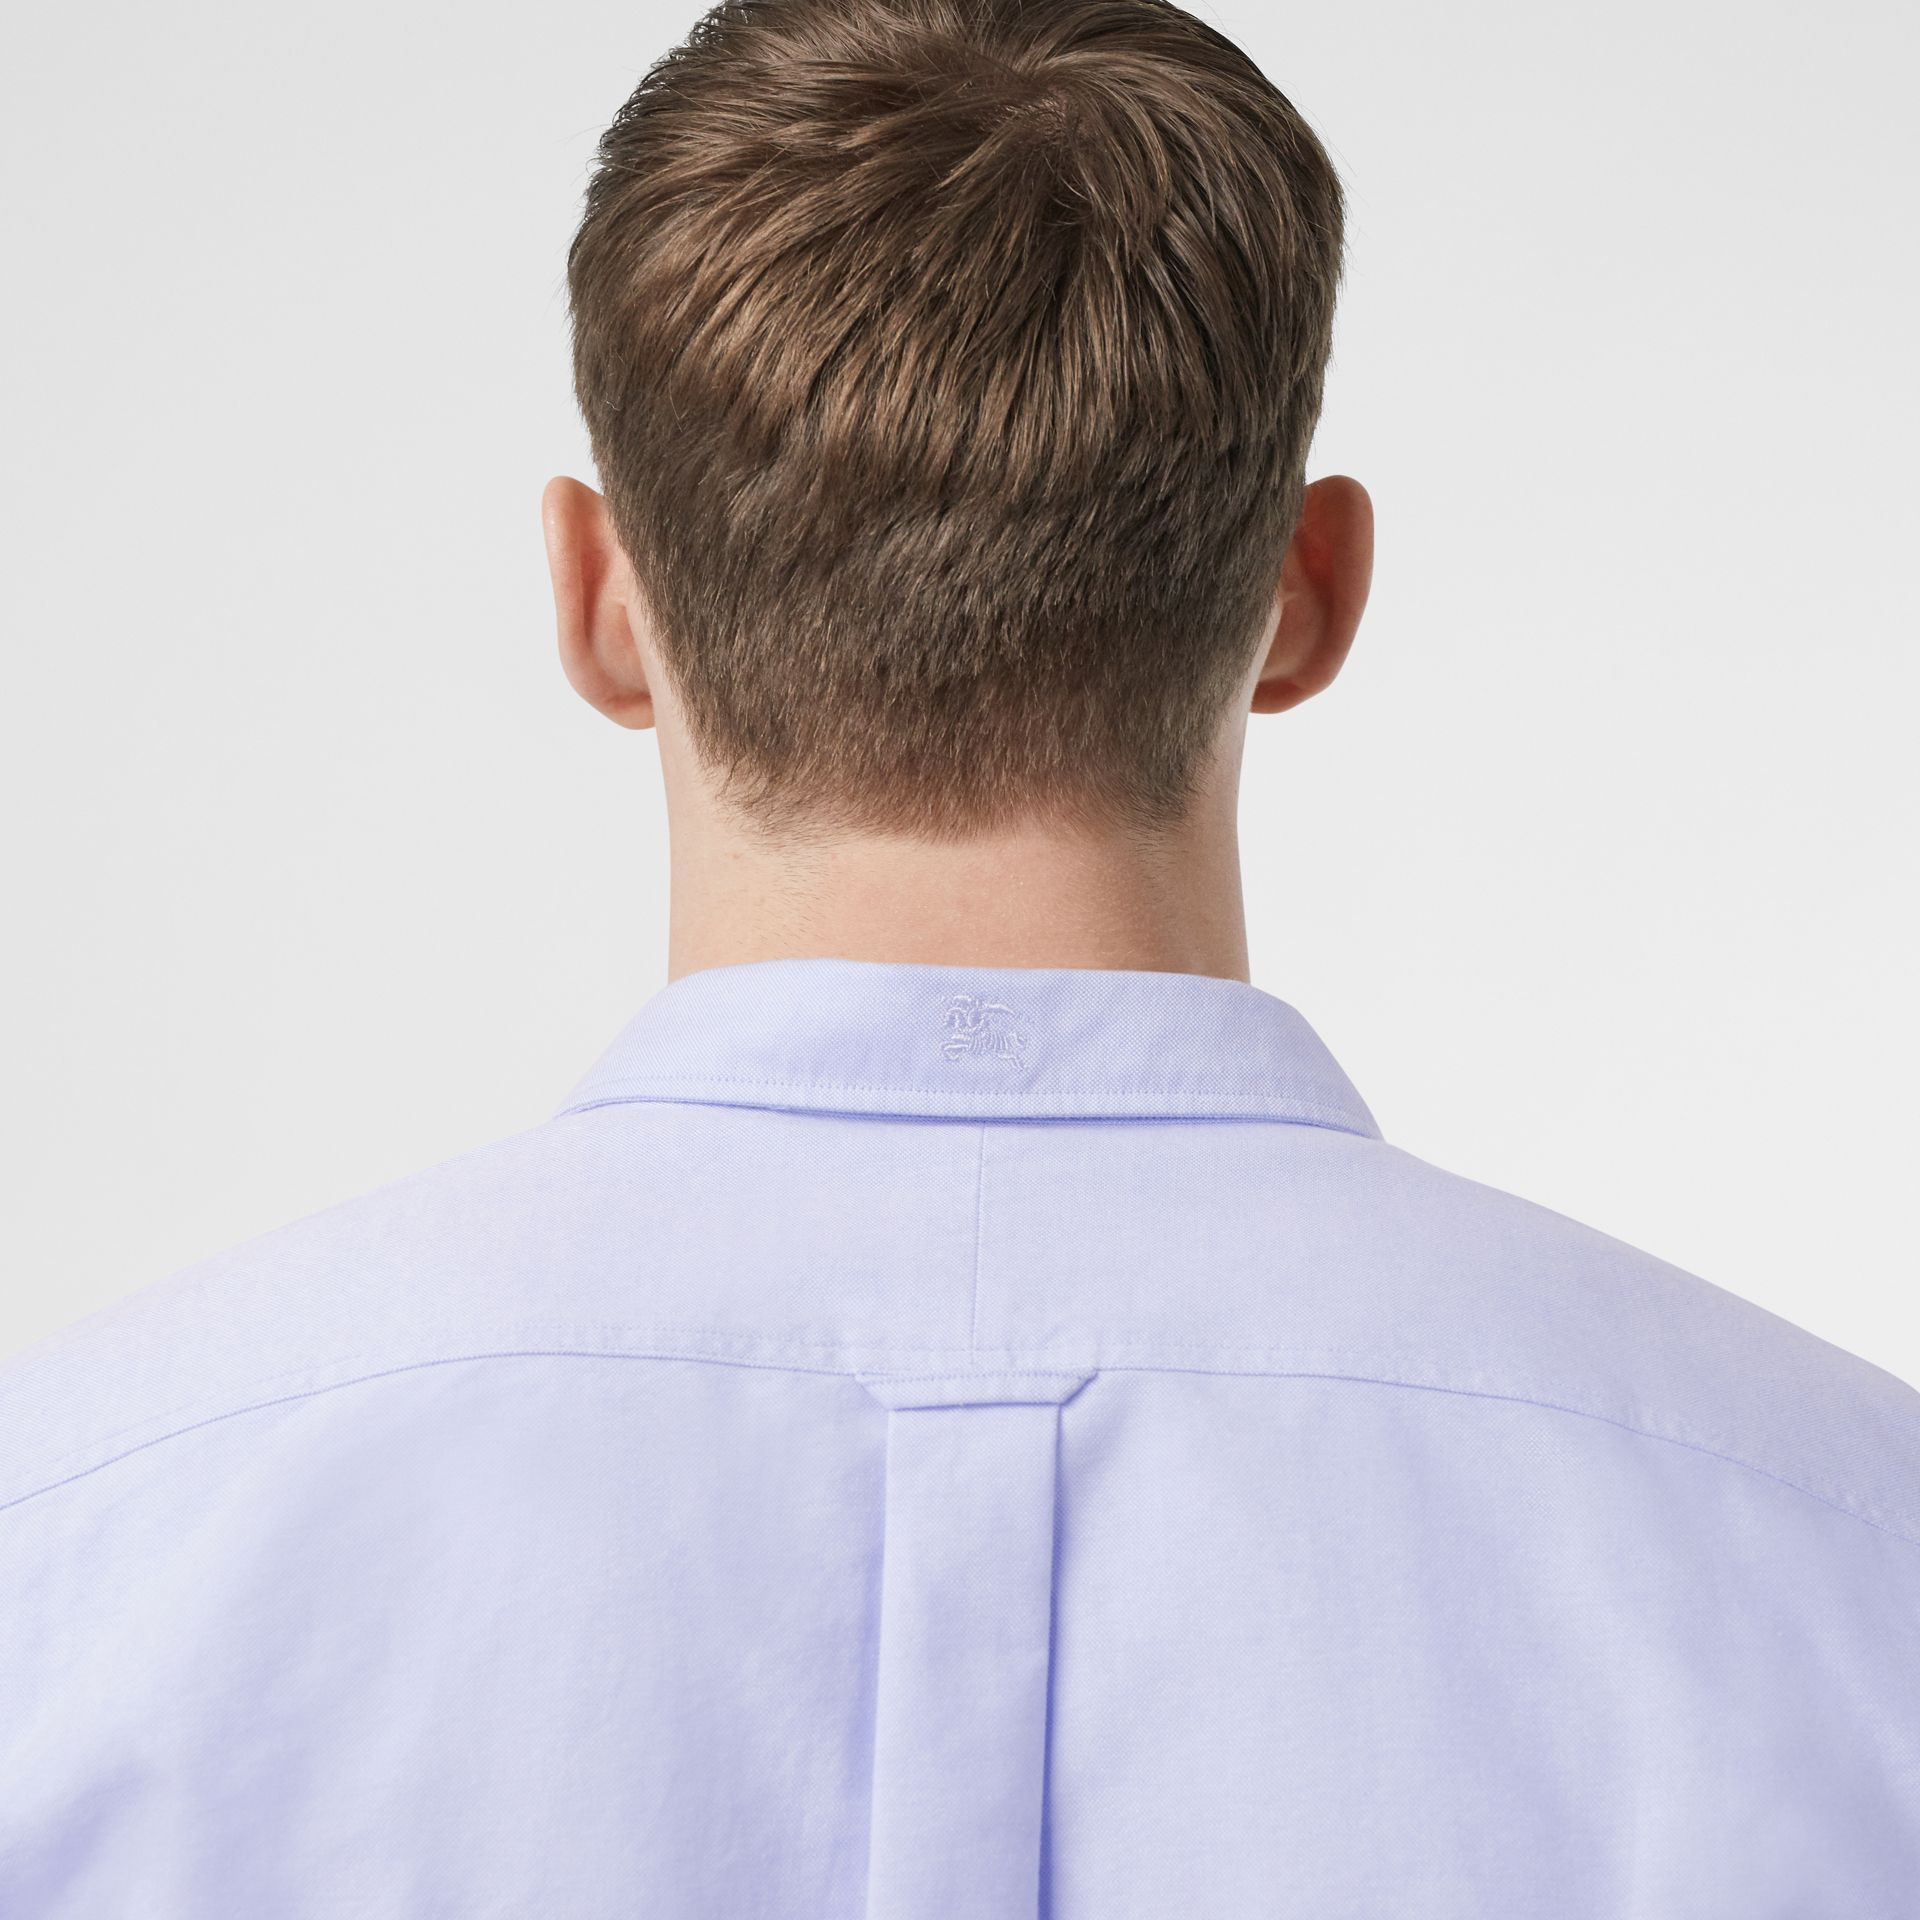 Button-down Collar Cotton Oxford Shirt in Cornflower Blue - Men | Burberry United Kingdom - gallery image 1